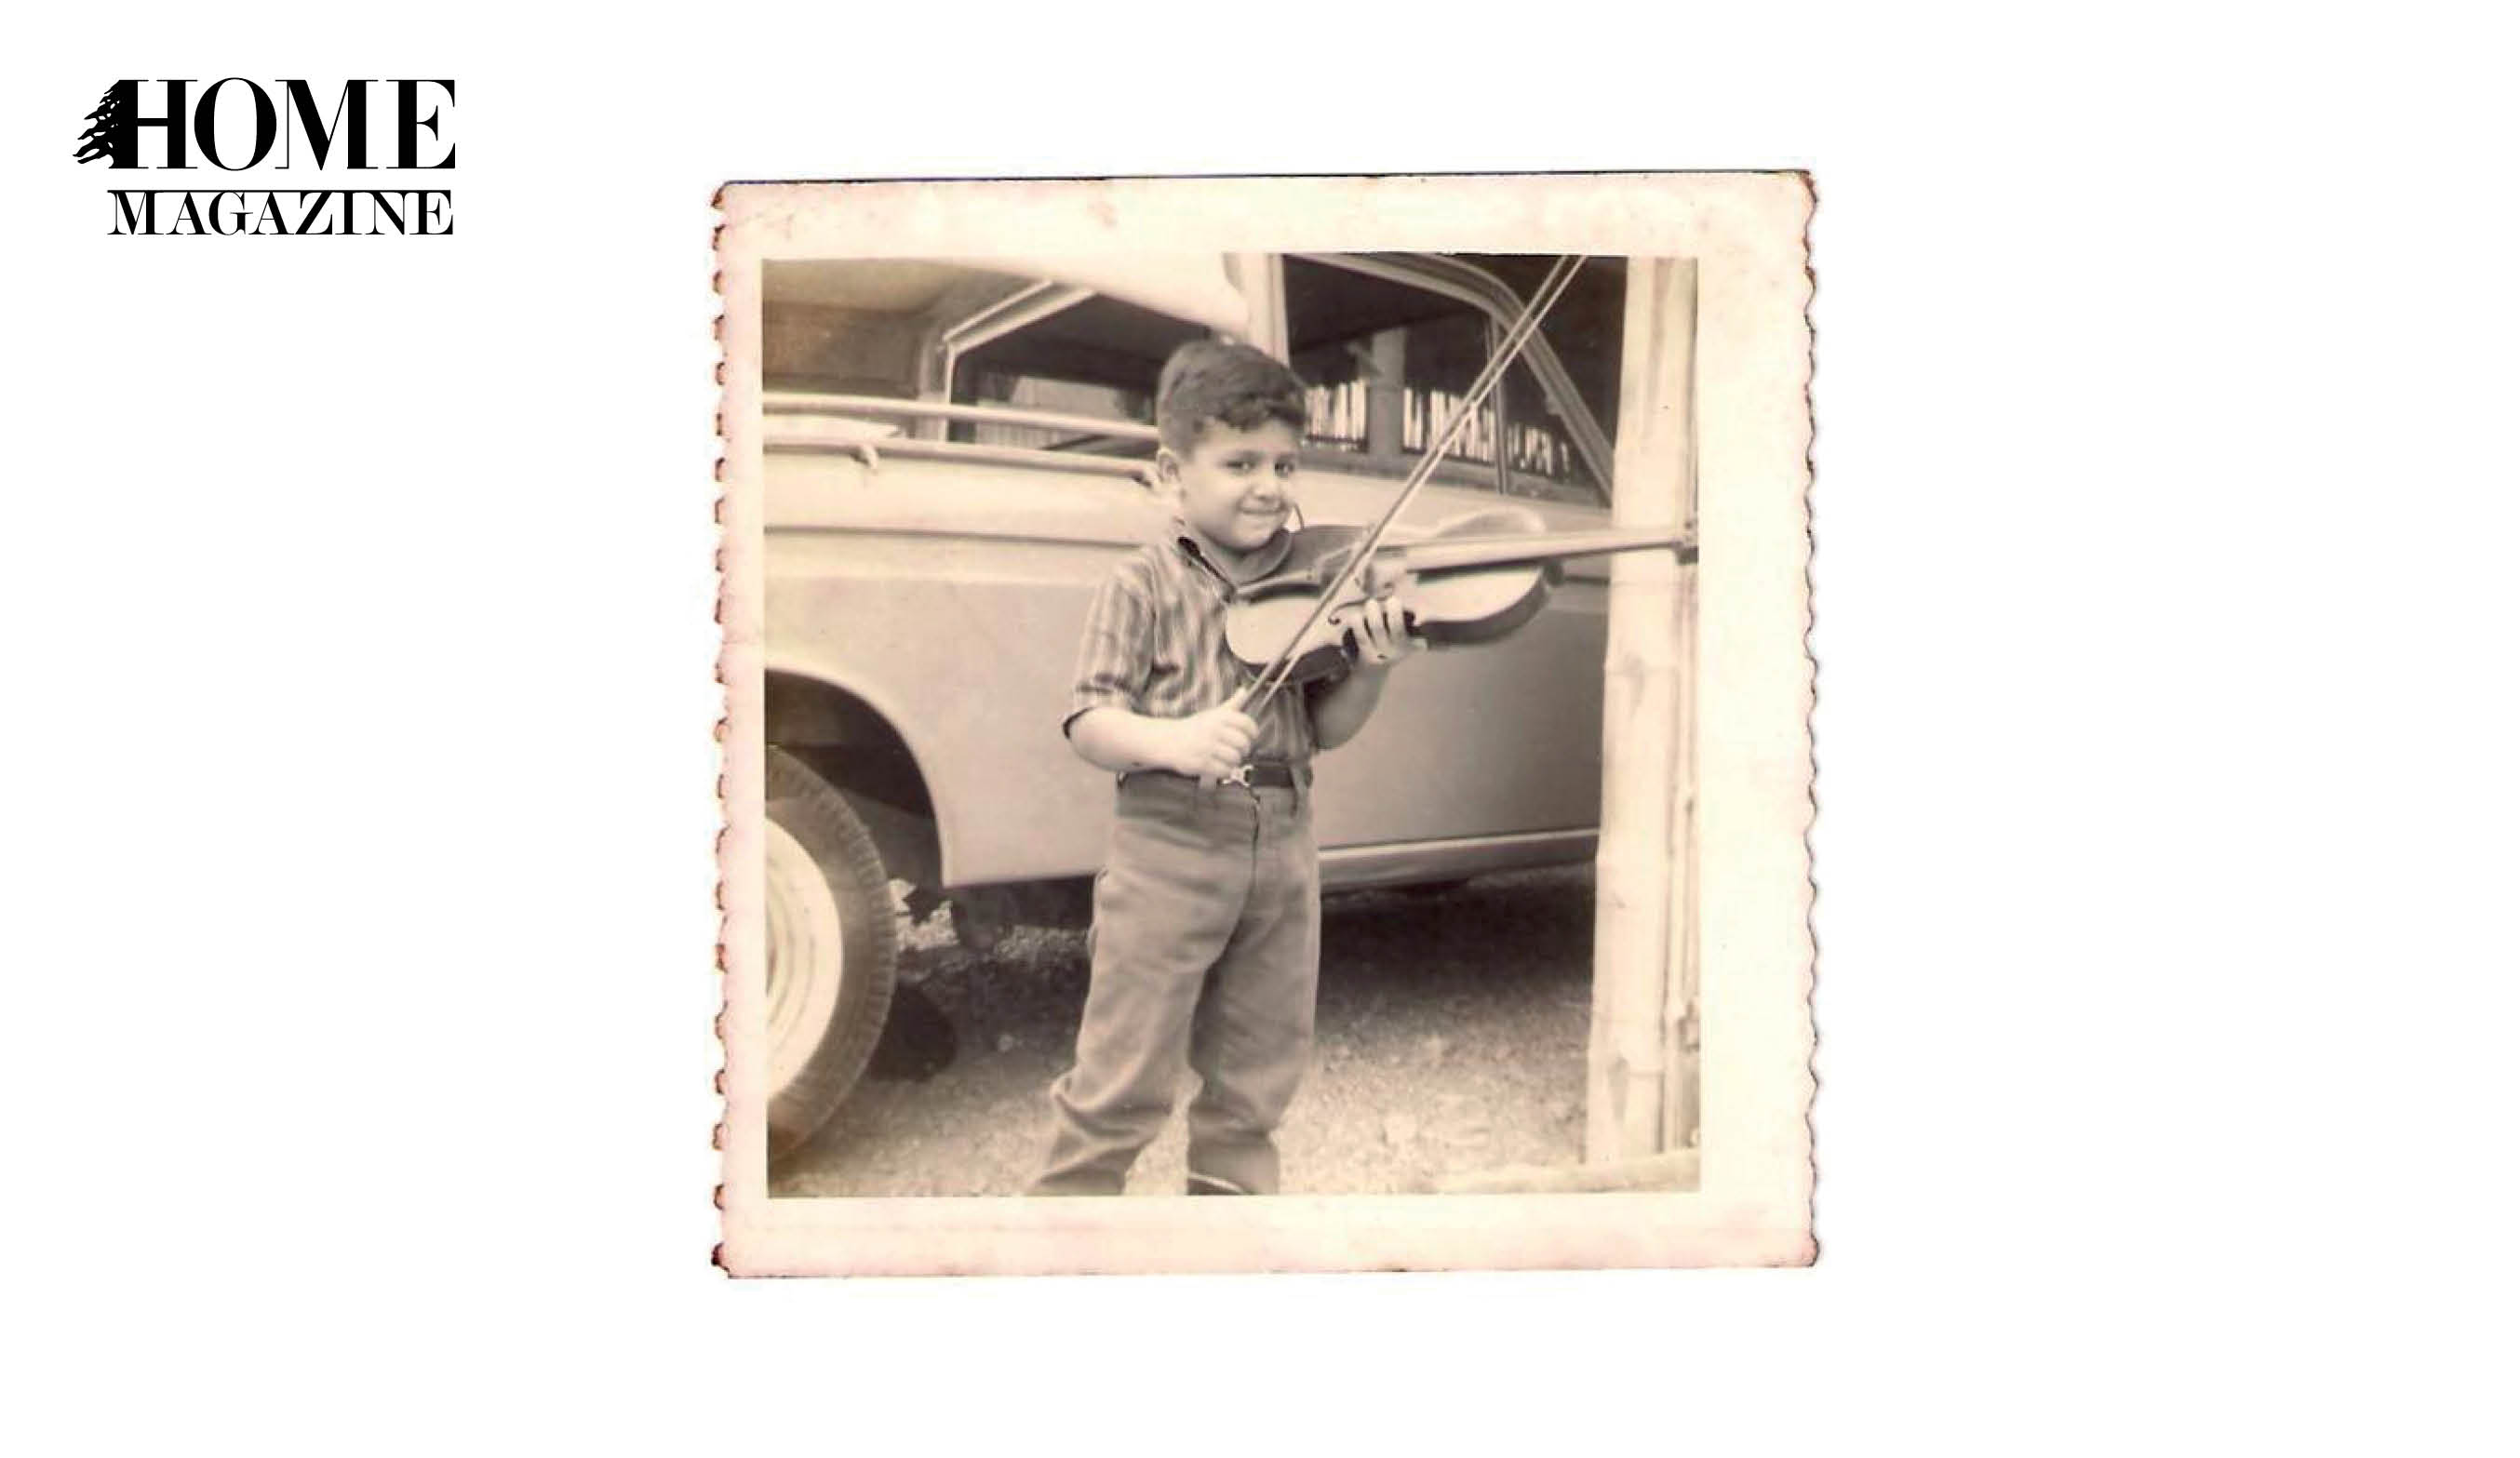 Litlle boy playing violin with a car in the background